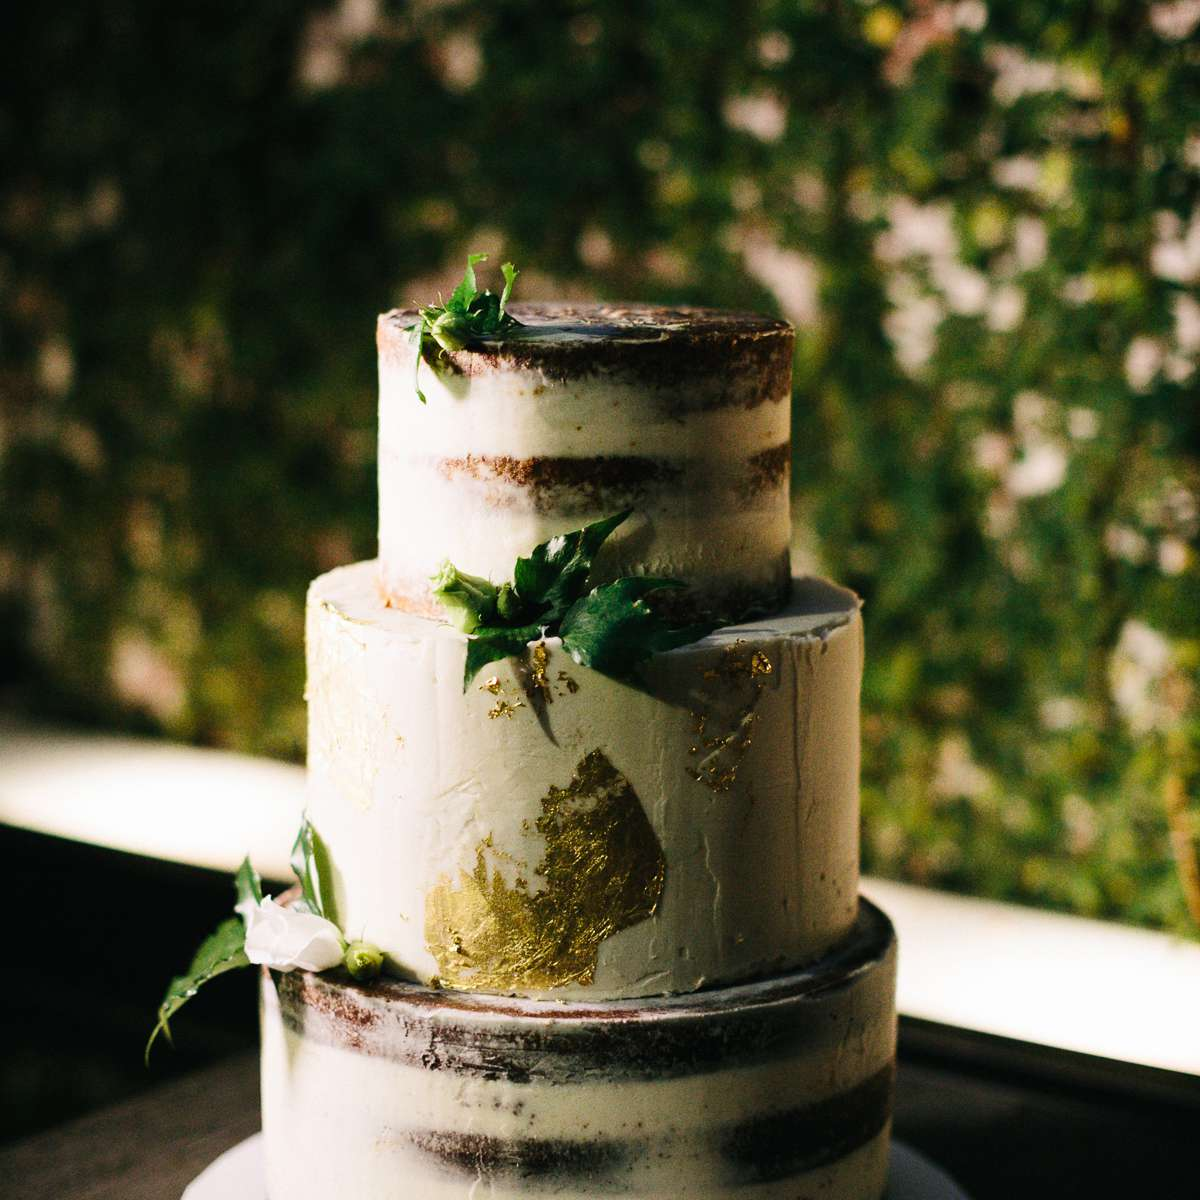 Nearly-Naked Chocolate Cake with Gold Foil